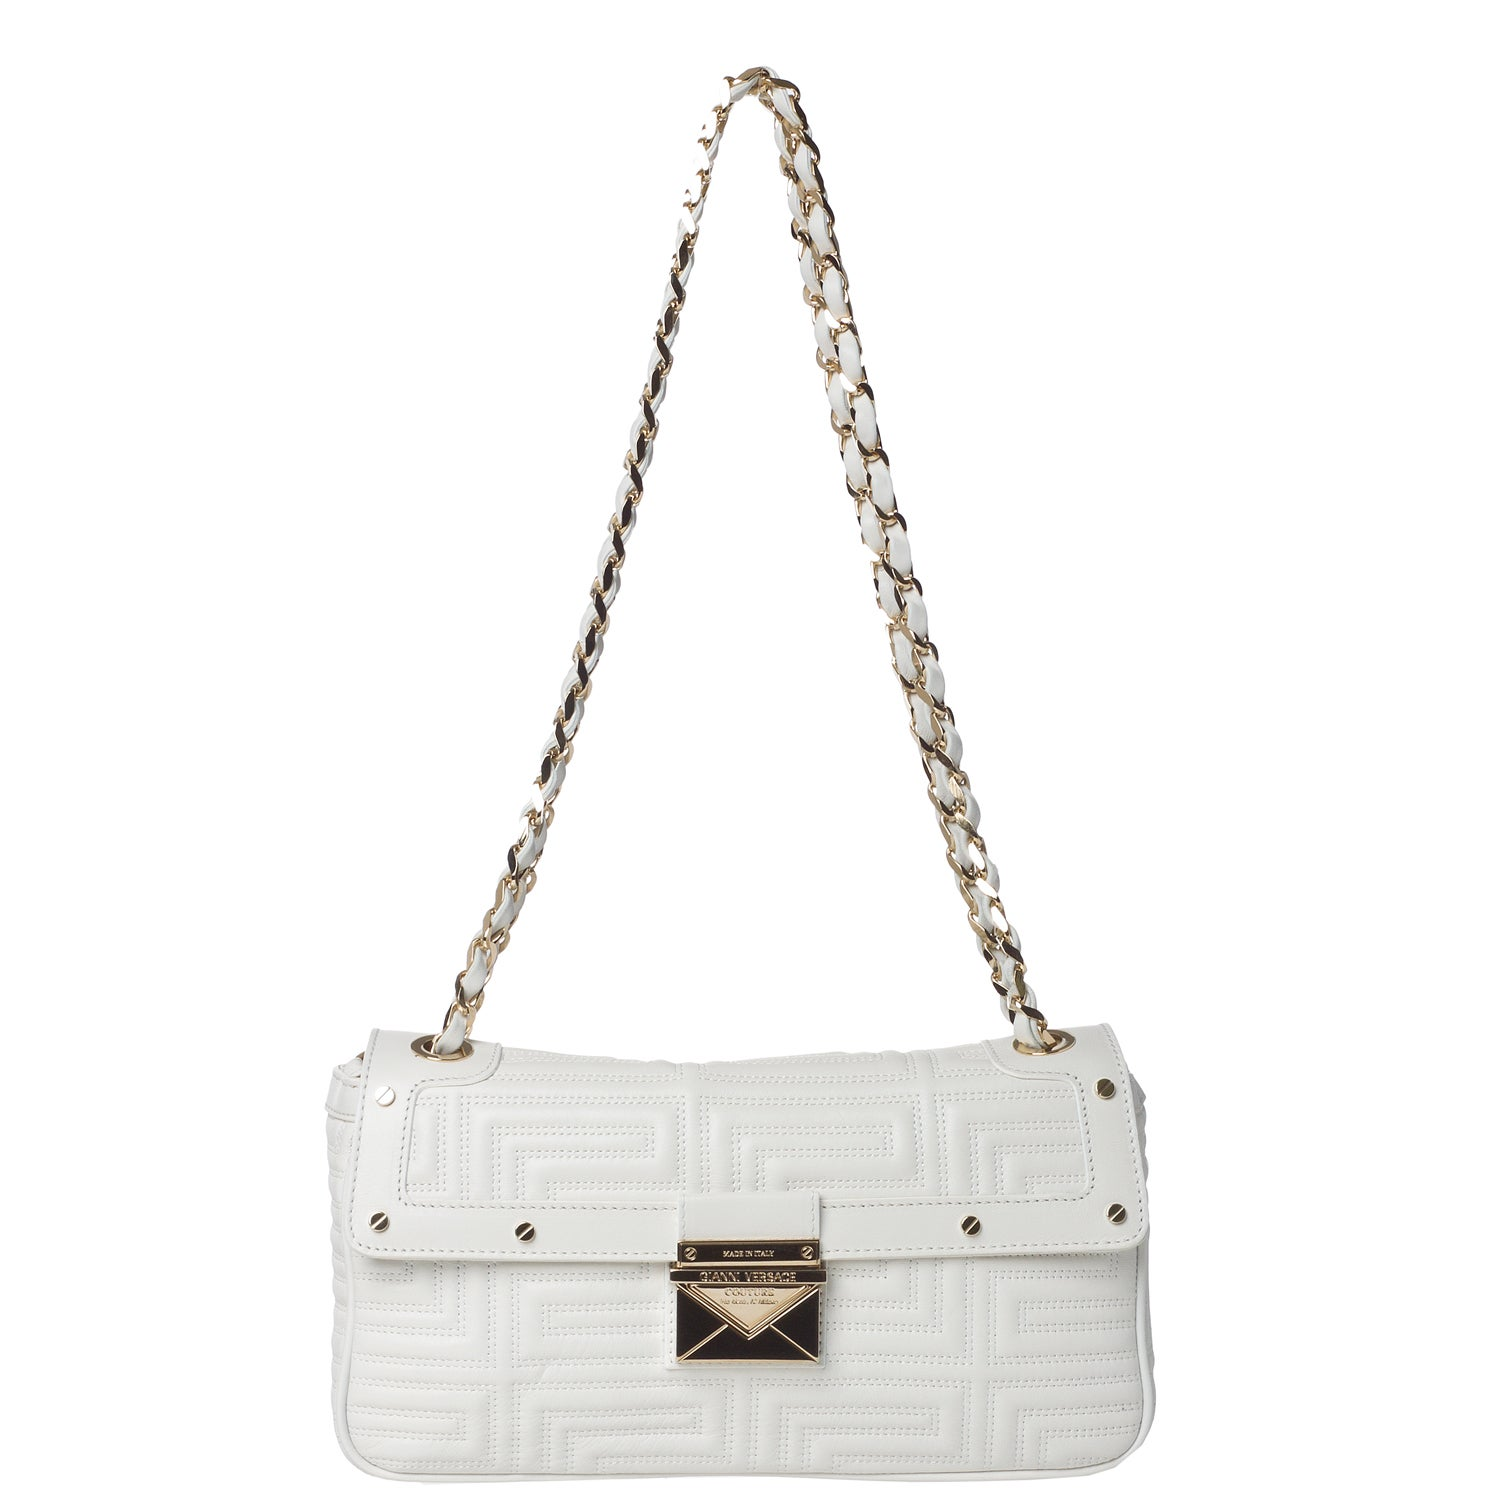 Versace Stitched White Leather Flap-over Shoulder Bag - Free ...